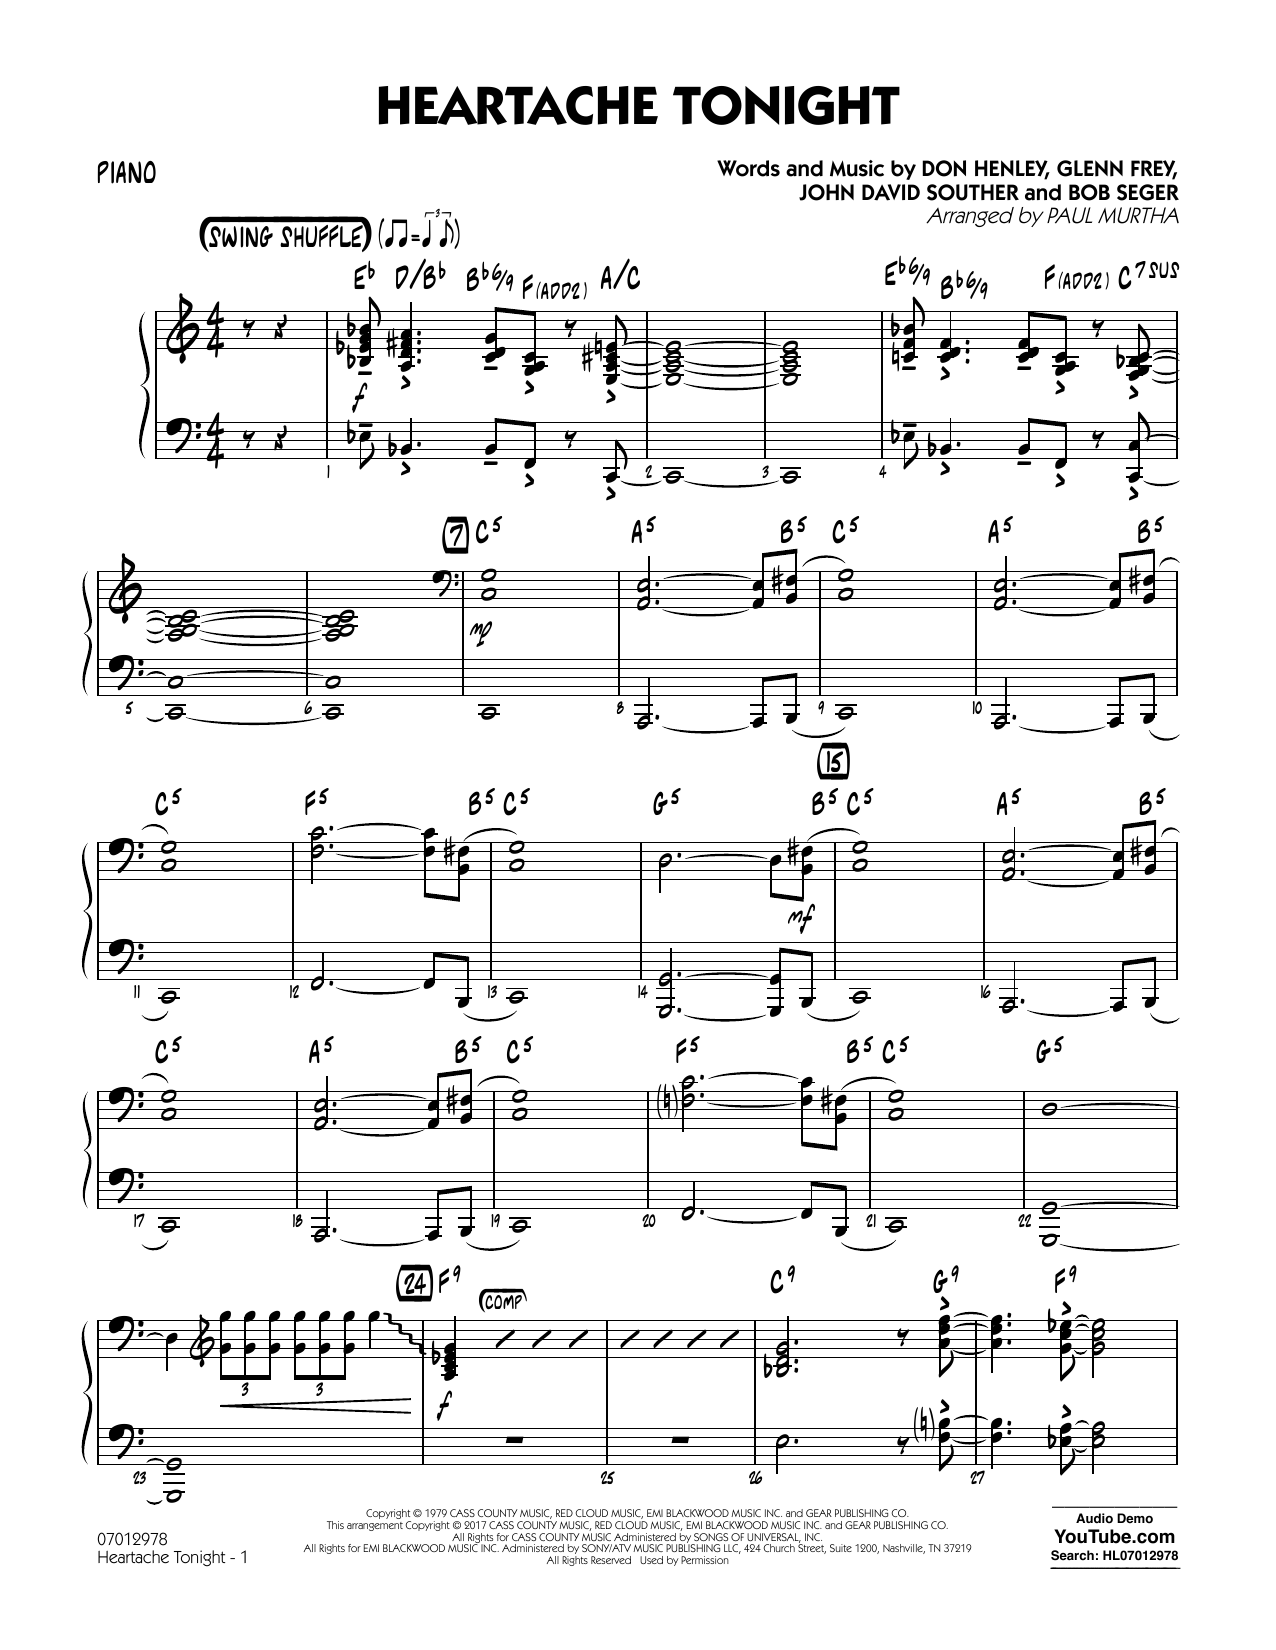 Paul Murtha Heartache Tonight - Piano sheet music notes and chords. Download Printable PDF.